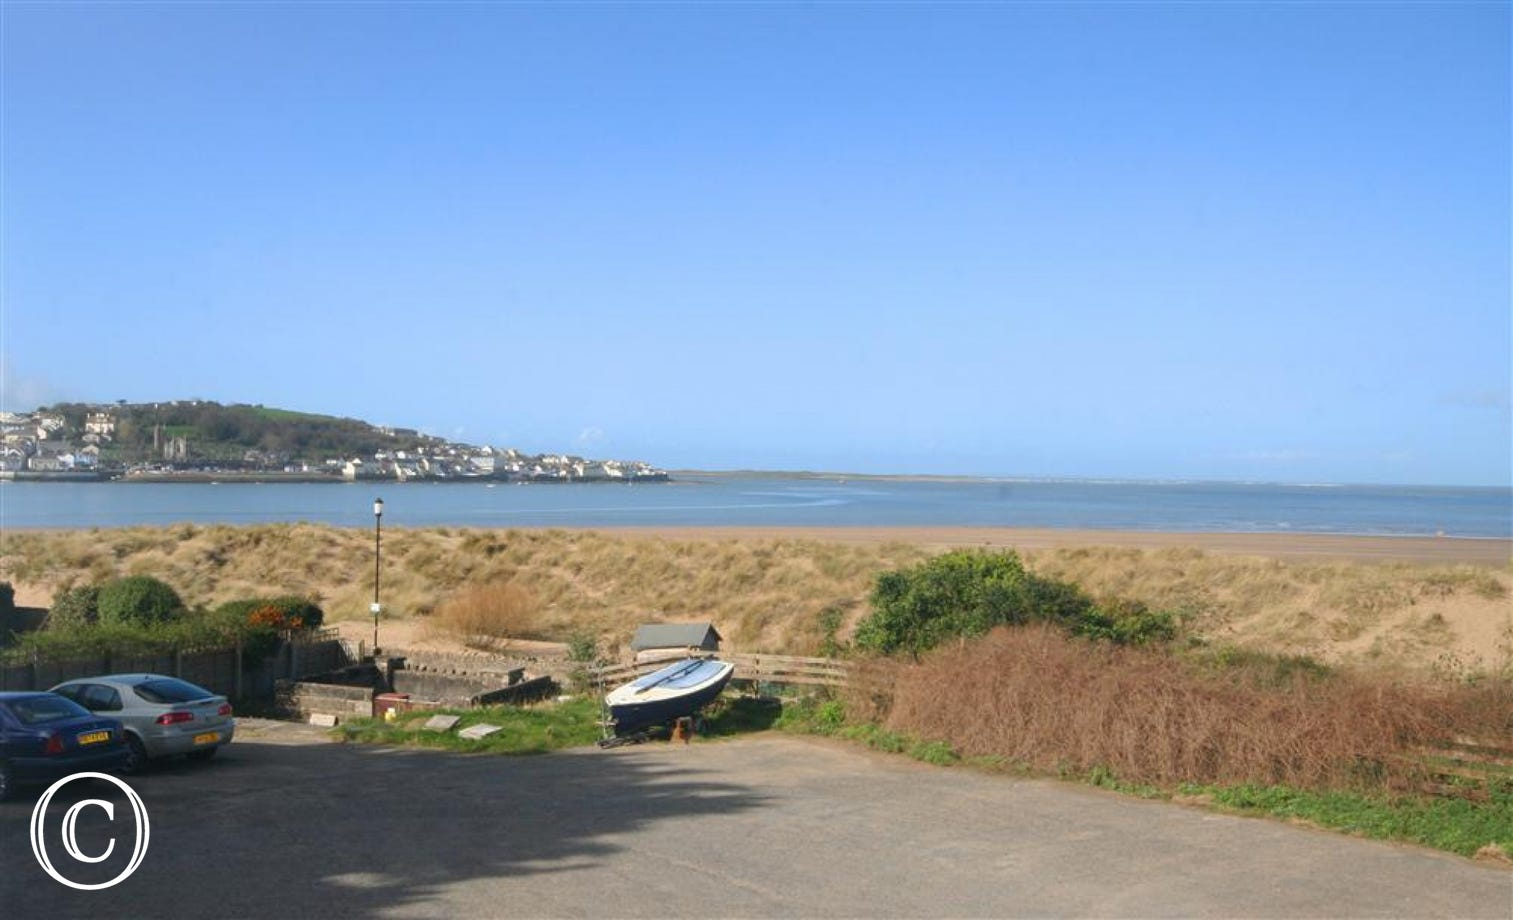 Flora Cottage overlooks Instow beach and has views over to Appledore